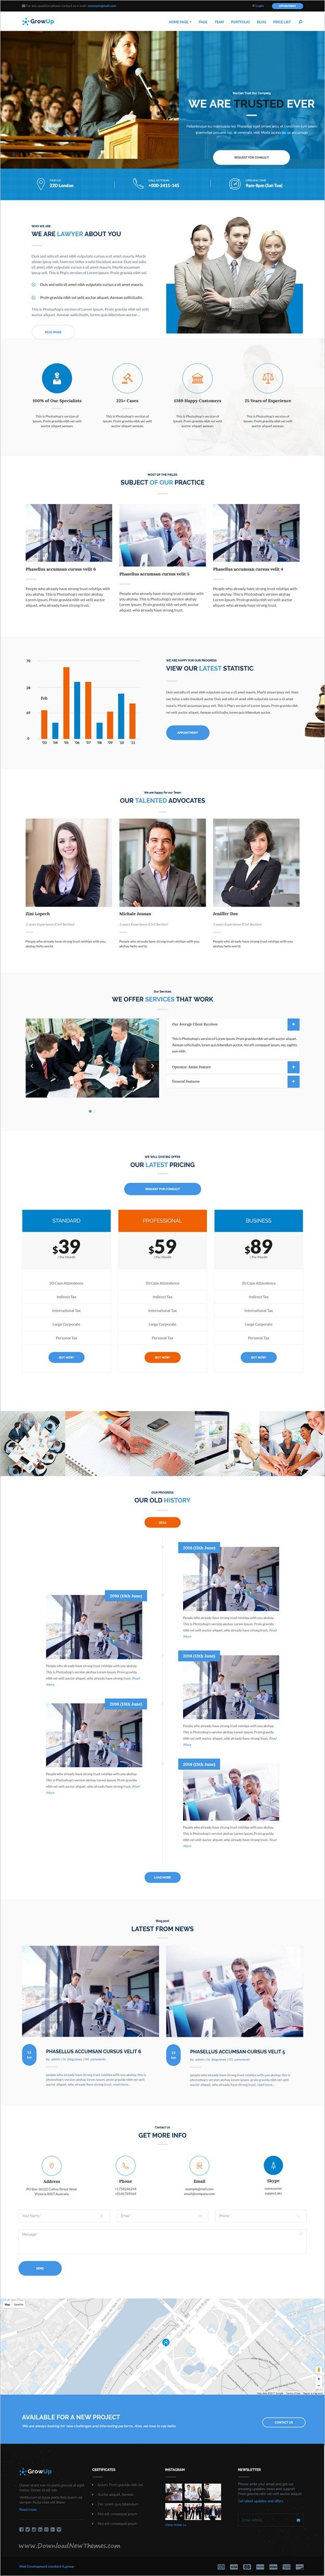 GrowUp is a modern design 6in1 professional #WordPress theme for #law #firm and business, financial websites download now➩ https://themeforest.net/item/growup-business-financial-wordpress-theme/18761663?ref=Datasata